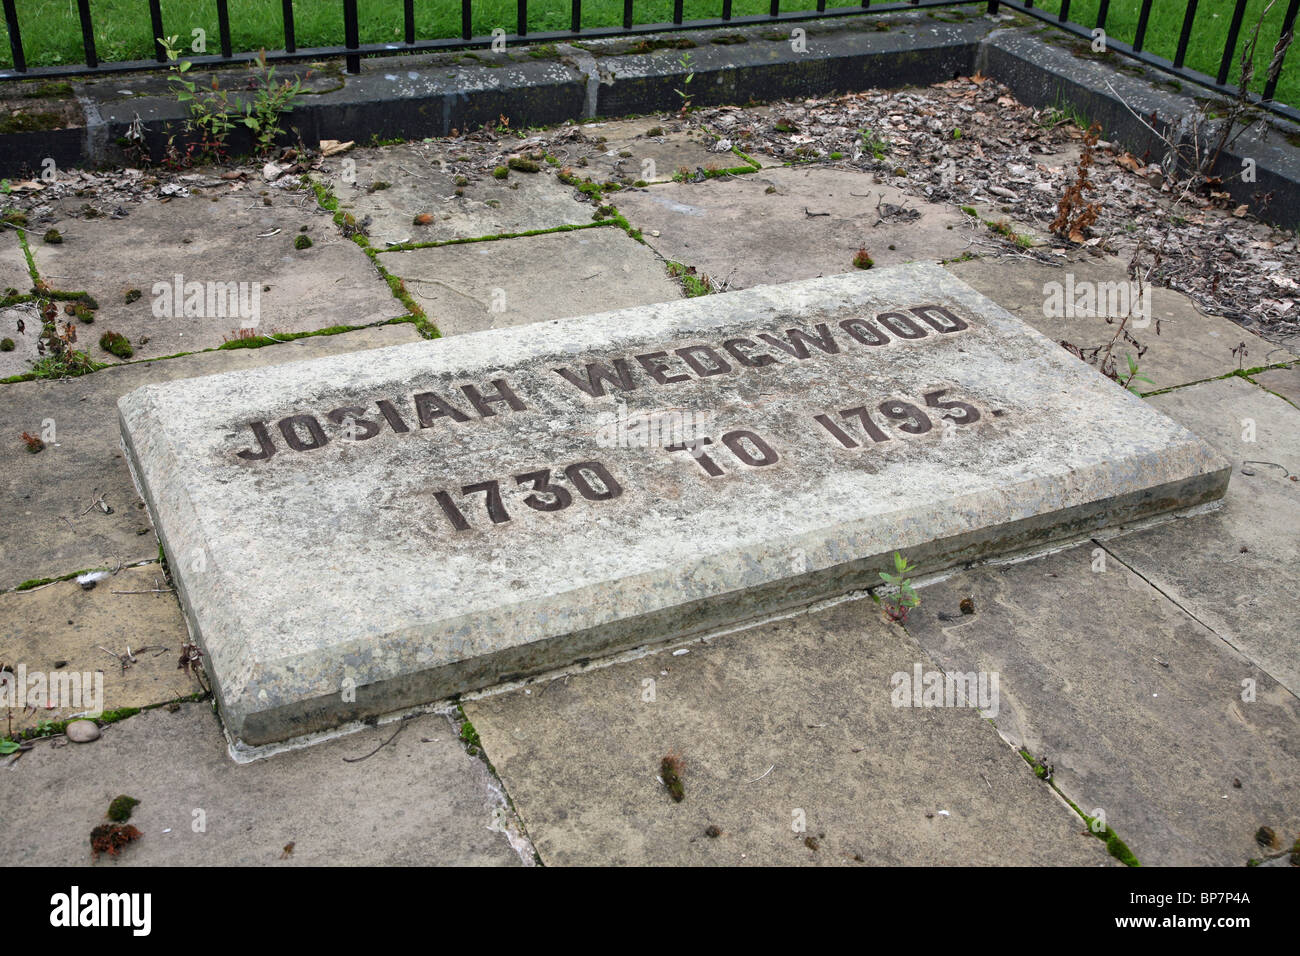 The grave of Josiah Wedgwood at Stoke Minster, the Church of St Peter ad Vincula, Stoke-on-Trent, Staffordshire, - Stock Image